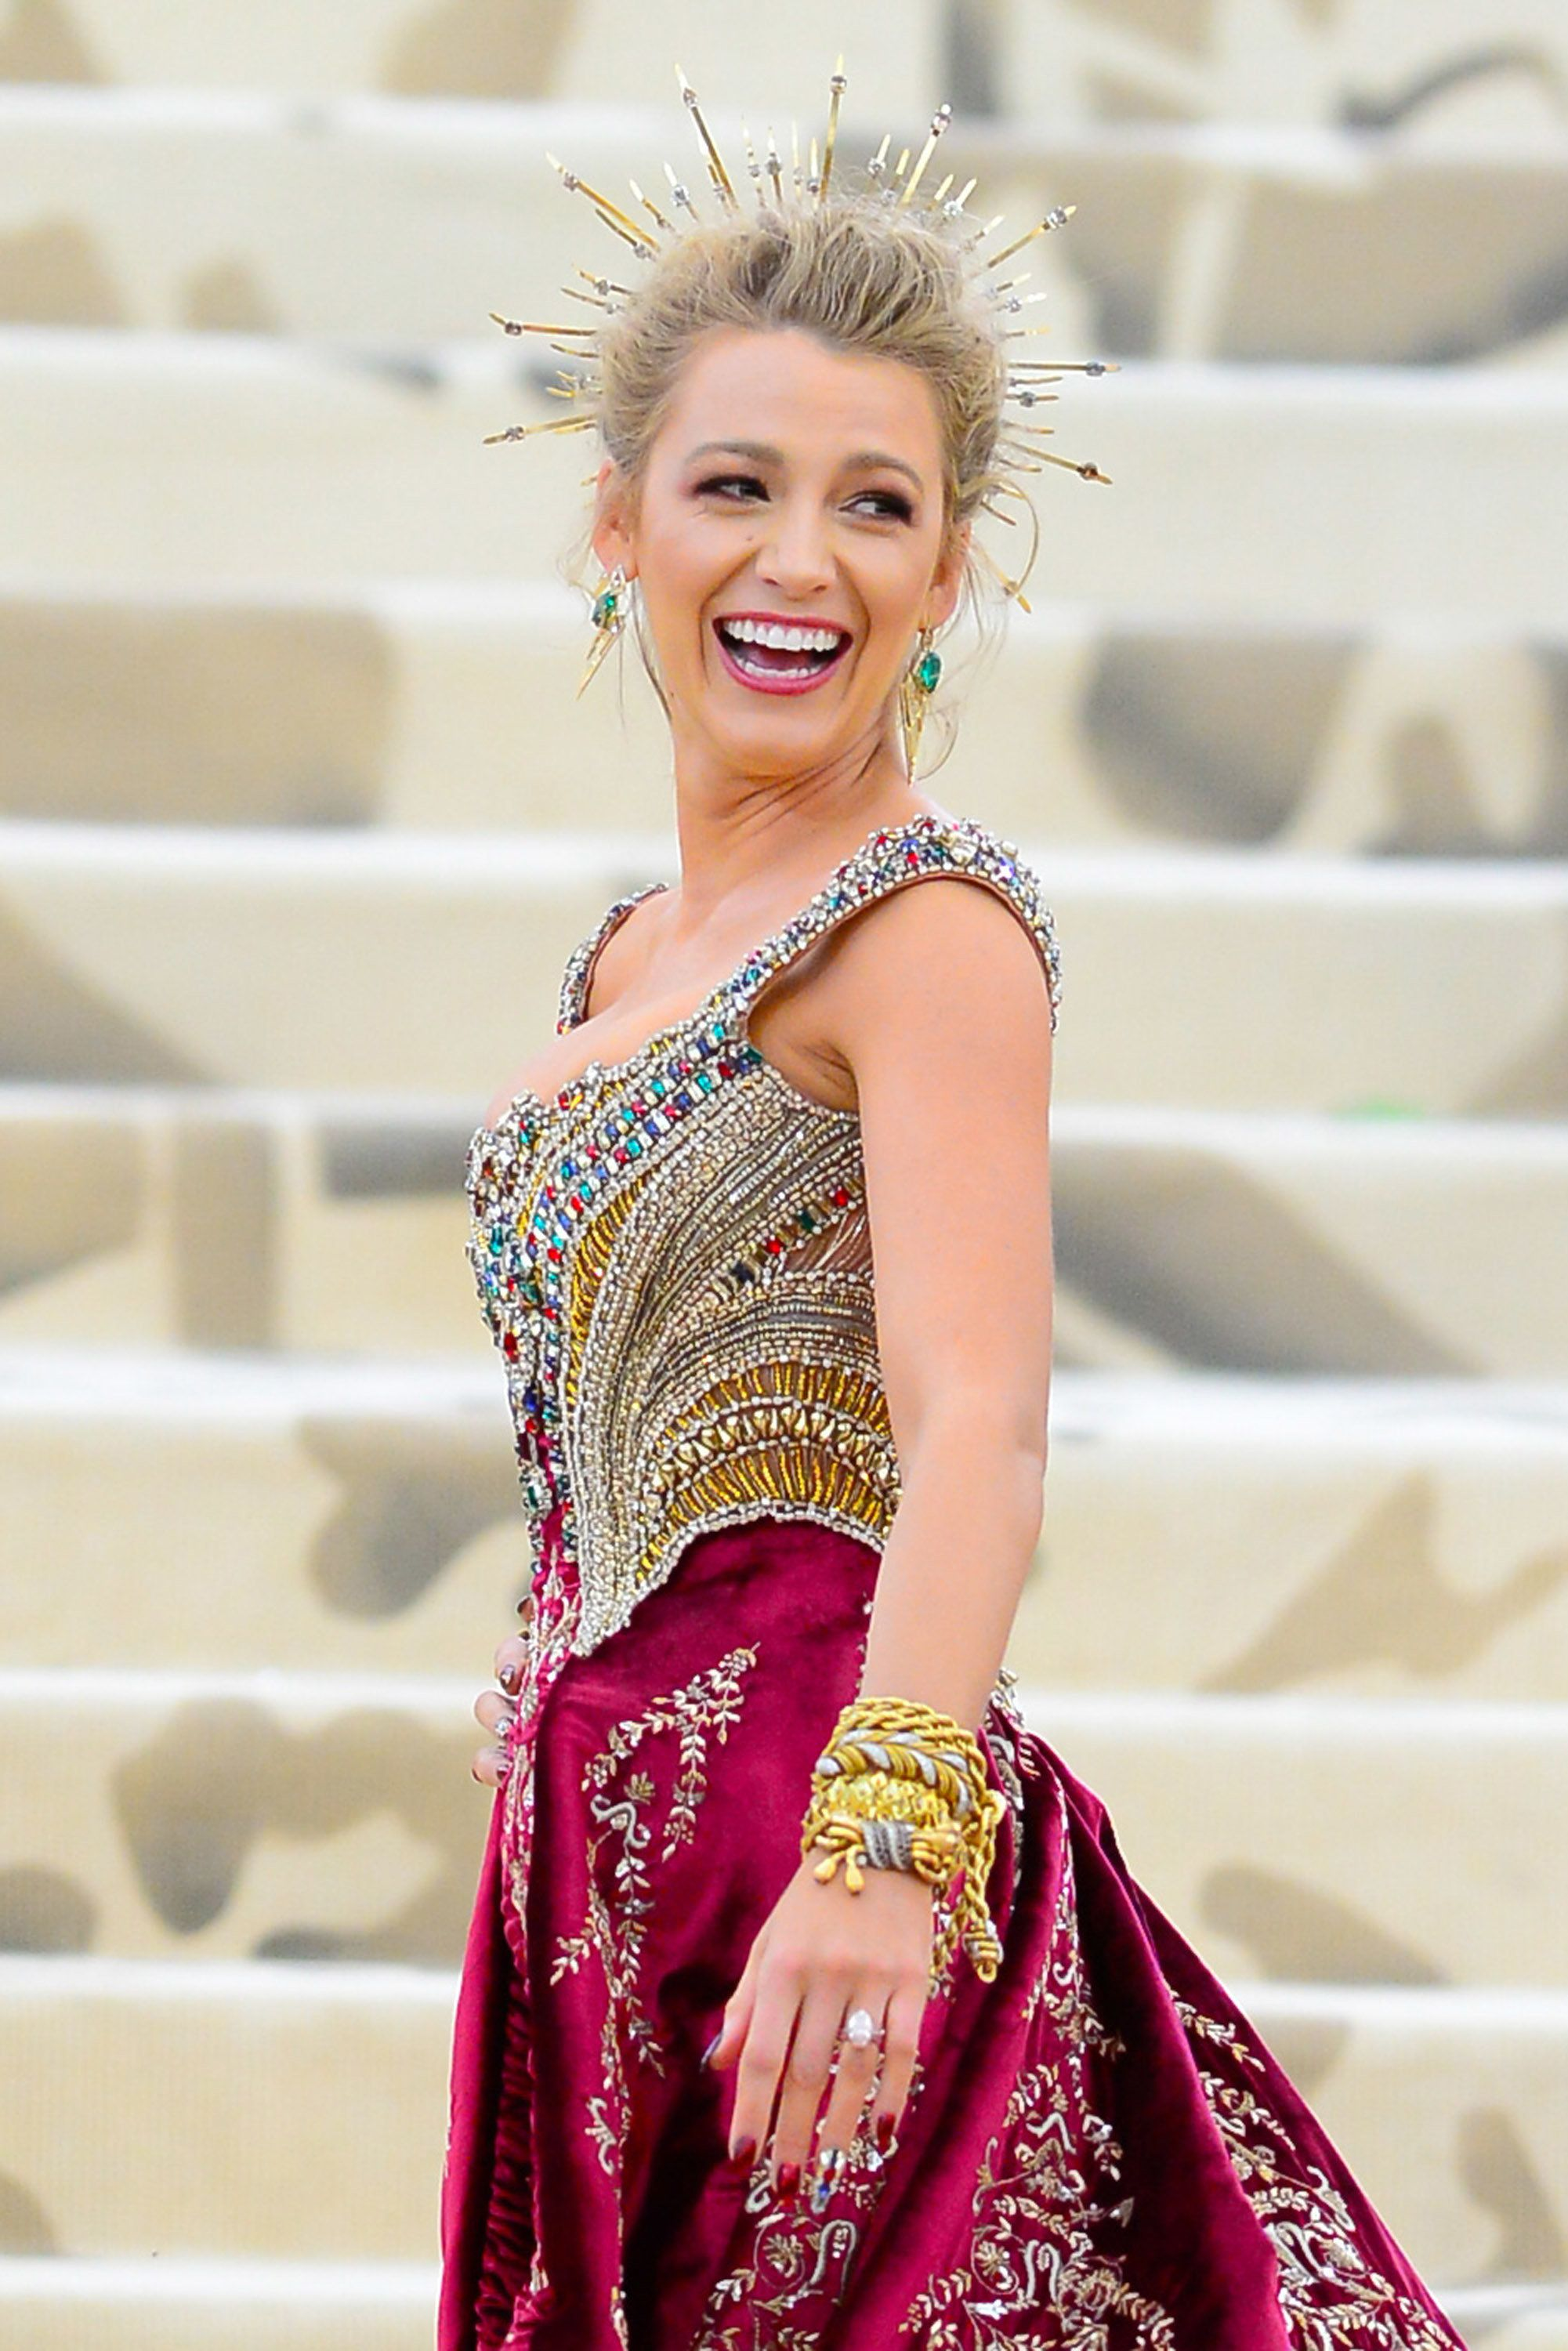 NEW YORK, NY - MAY 07:  Blake Lively  attends the Heavenly Bodies: Fashion & The Catholic Imagination Costume Institute Gala at The Metropolitan Museum of Ar at  on May 7, 2018 in New York City.  (Photo by Raymond Hall/GC Images)